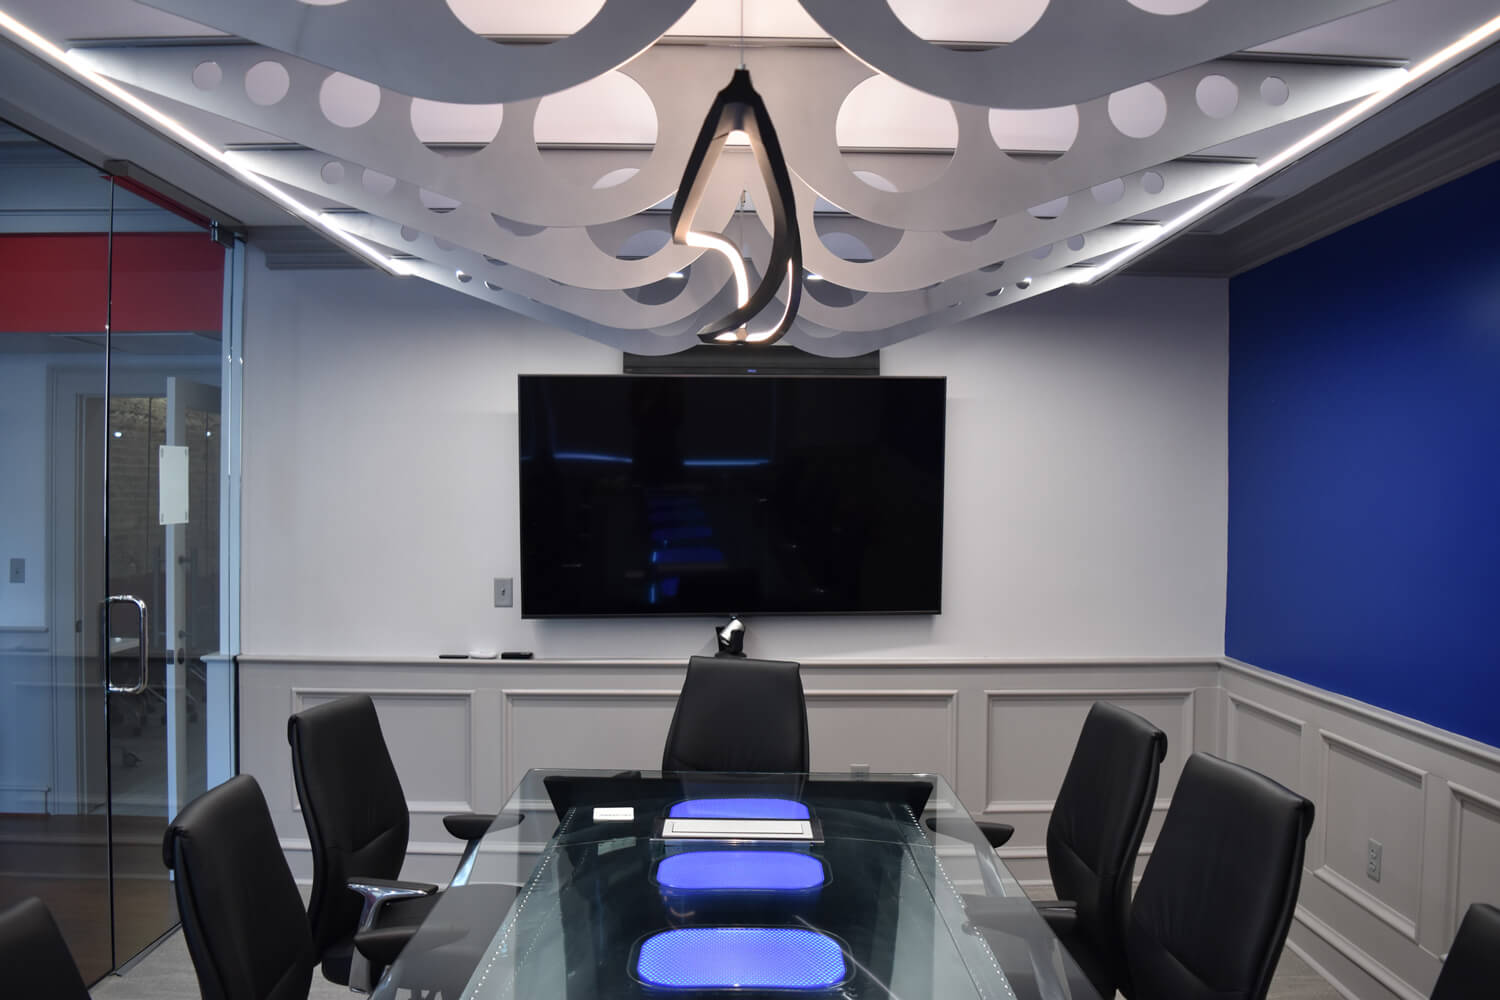 MGMWerx Collaboration Space - Conference Room - Designed by Foshee Architecture